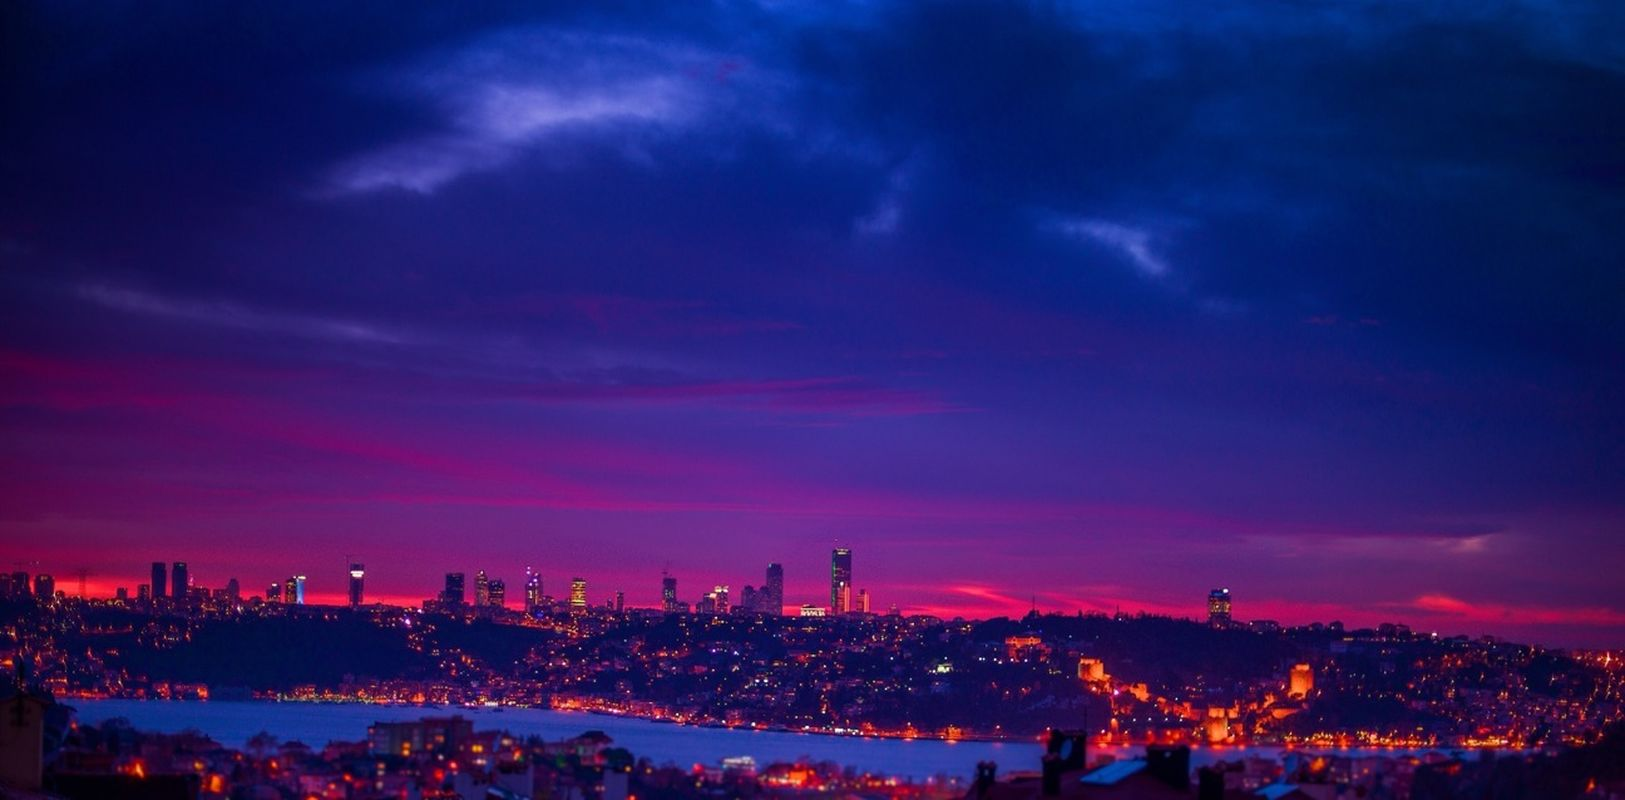 Great atmosphere instagram #sunset #sun #clouds #skylovers #sky #nature #beautifulinnature #naturalbeauty #photography #landscape eye4photography  bisgen Relaxing instagood sunset landscape Taking Photos blue Night Lights Red clouds and sky Istanbul popular Hello world by Ersin Bisgen